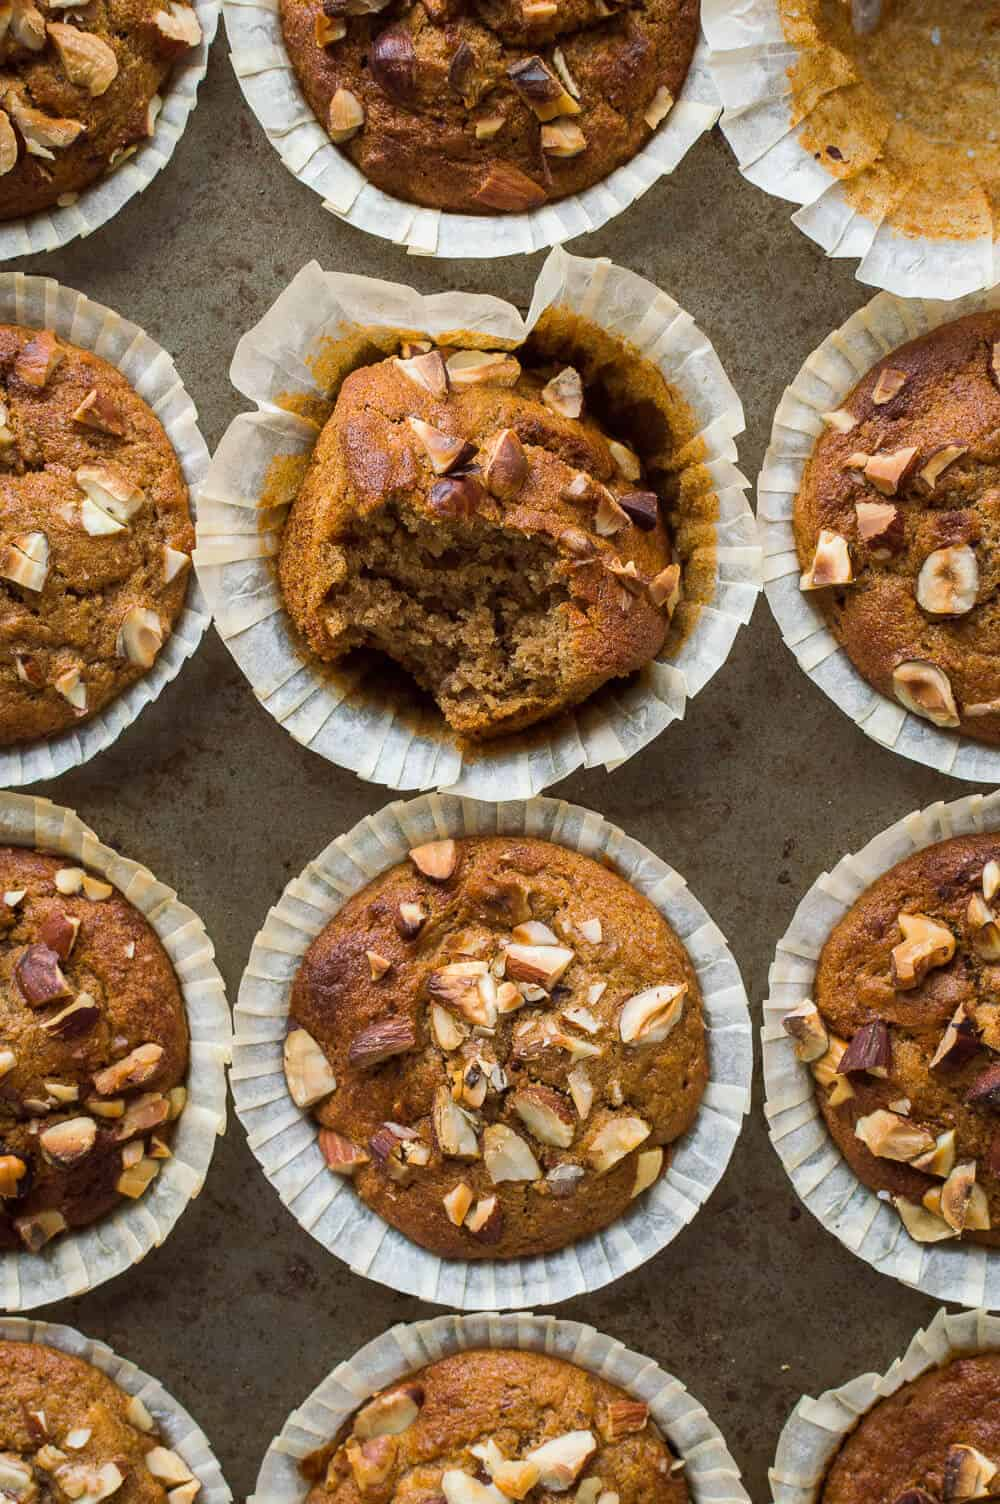 Banana nut muffins - moist, flavourful, quick and easy to make vegan banana muffins filled with chopped mixed nuts. Perfect for breakfast or snacking. #vegan #veganbaking #muffins #breakfast #snack